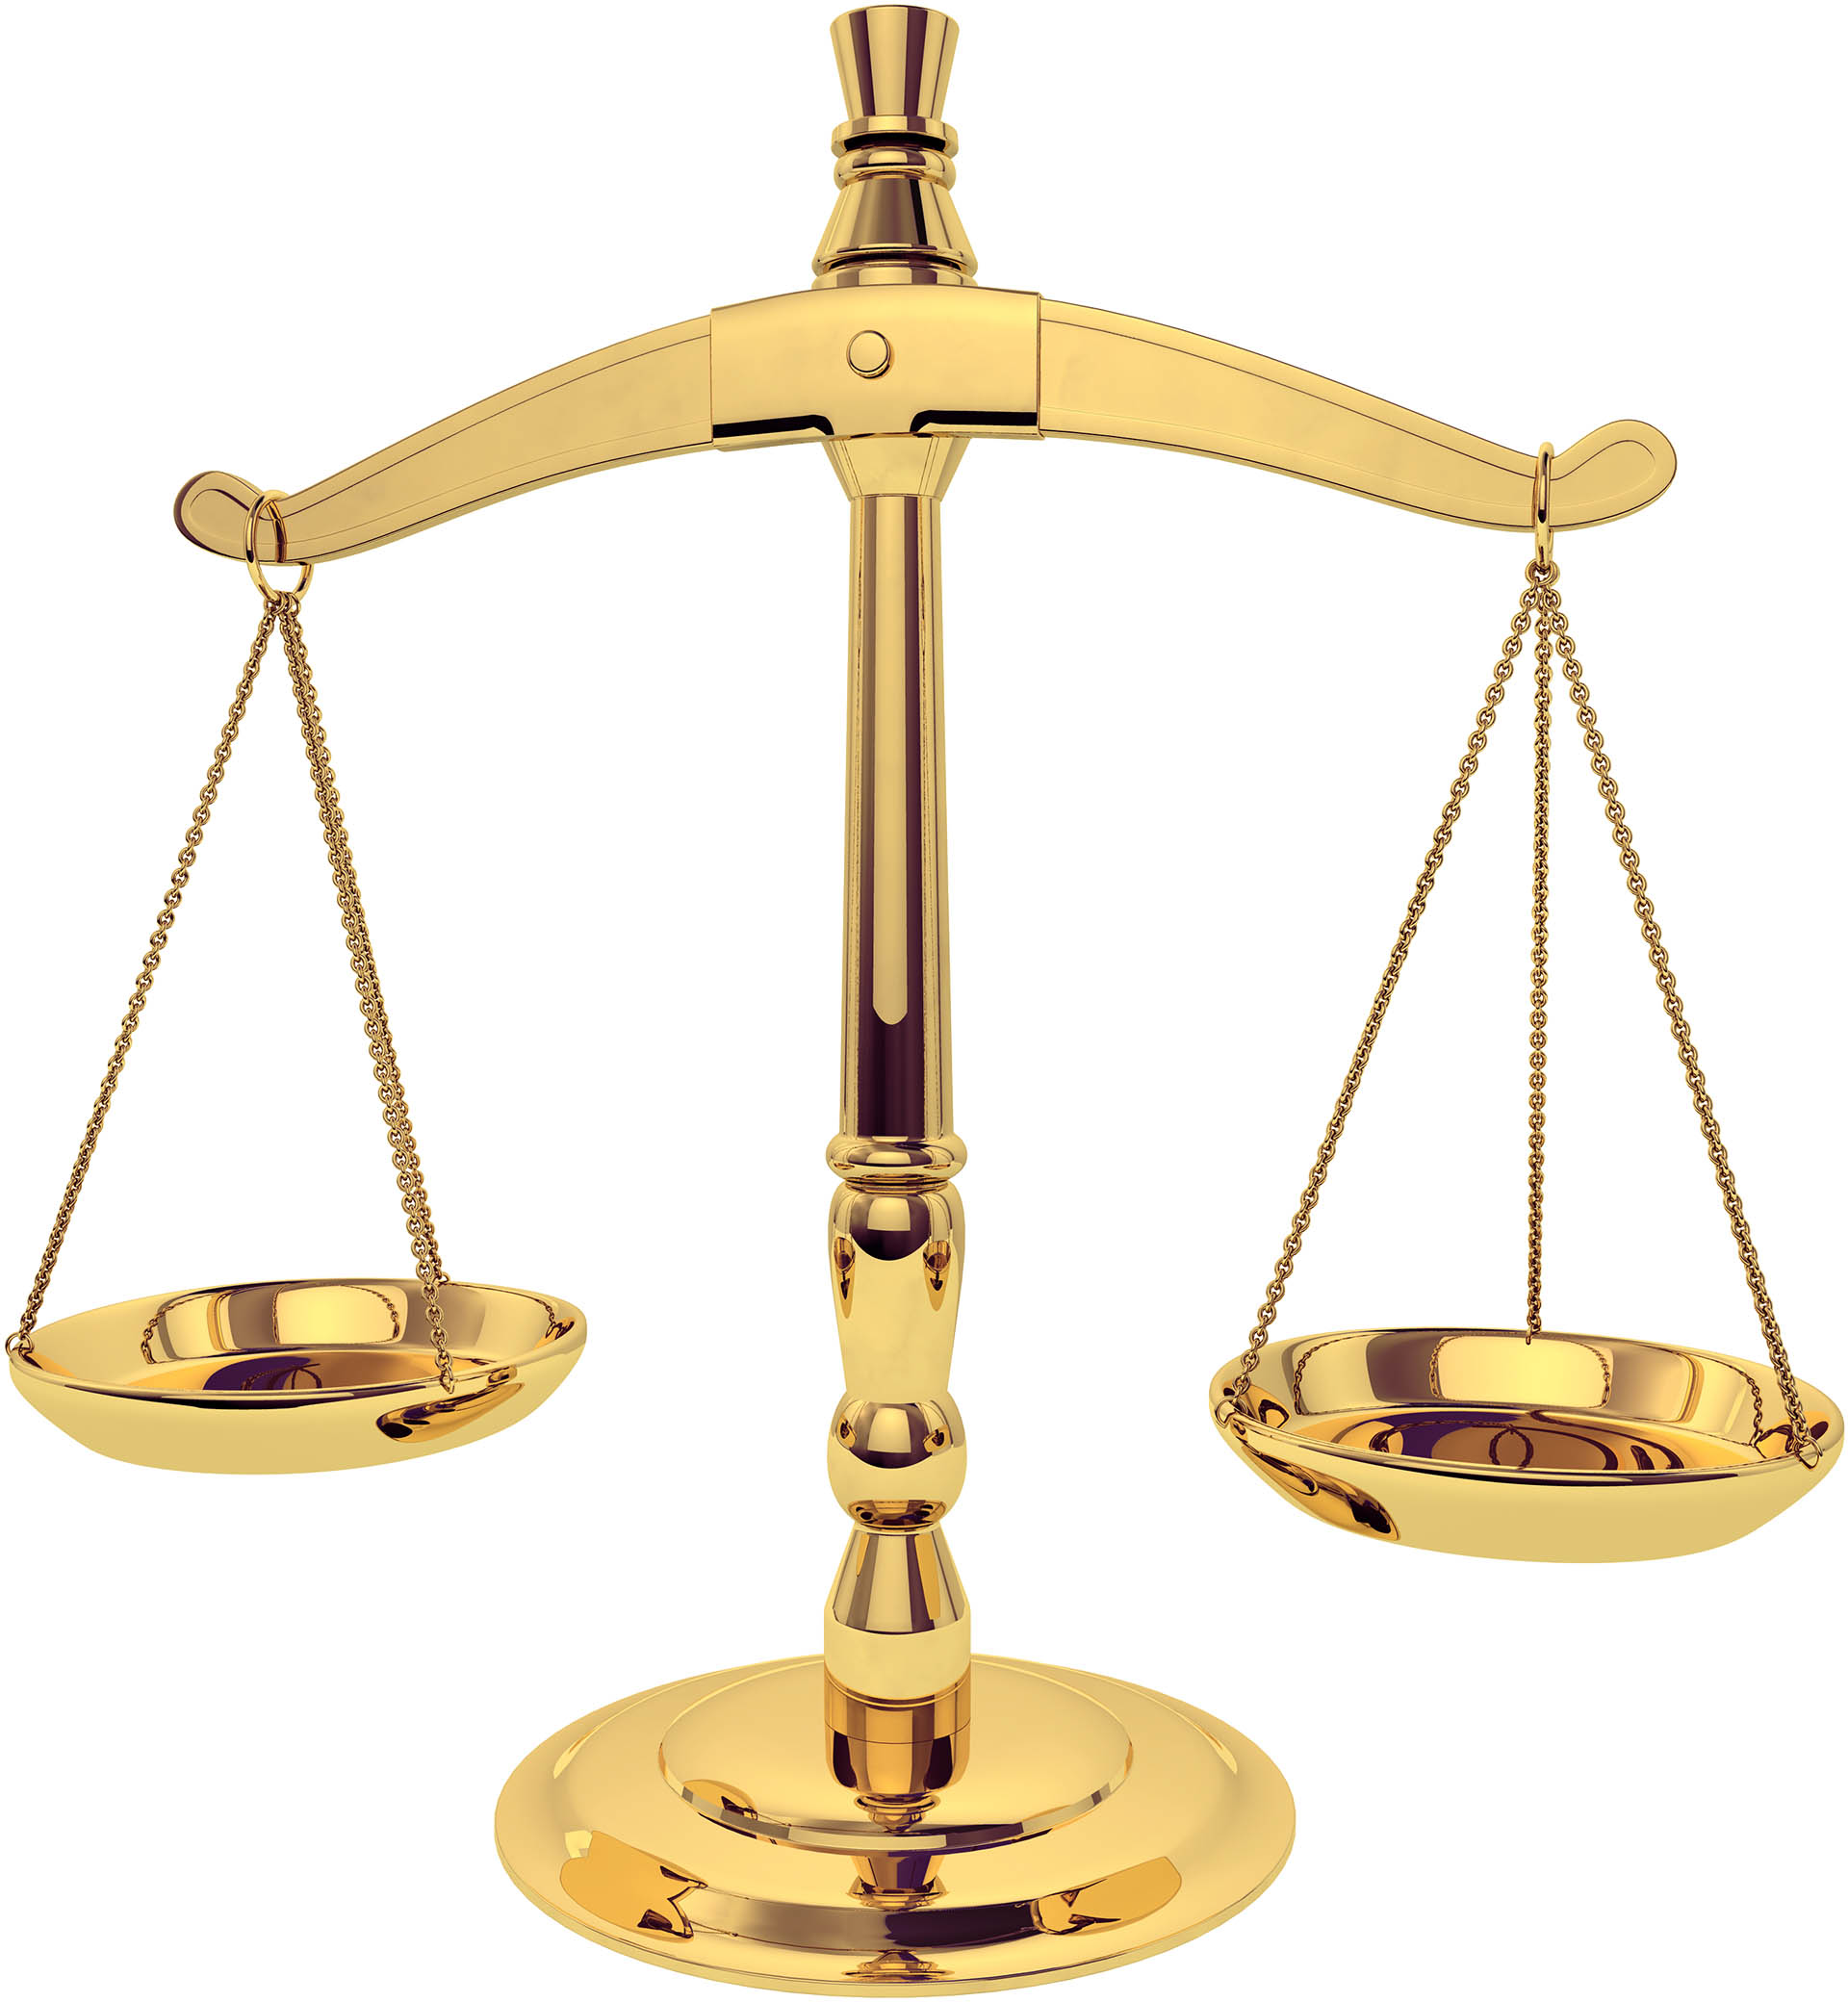 3. Golden Scales of JUSTICE (TRUTH FACTS EVIDENCE PROOF) EQUALITY FAIRNESS PLURALISM